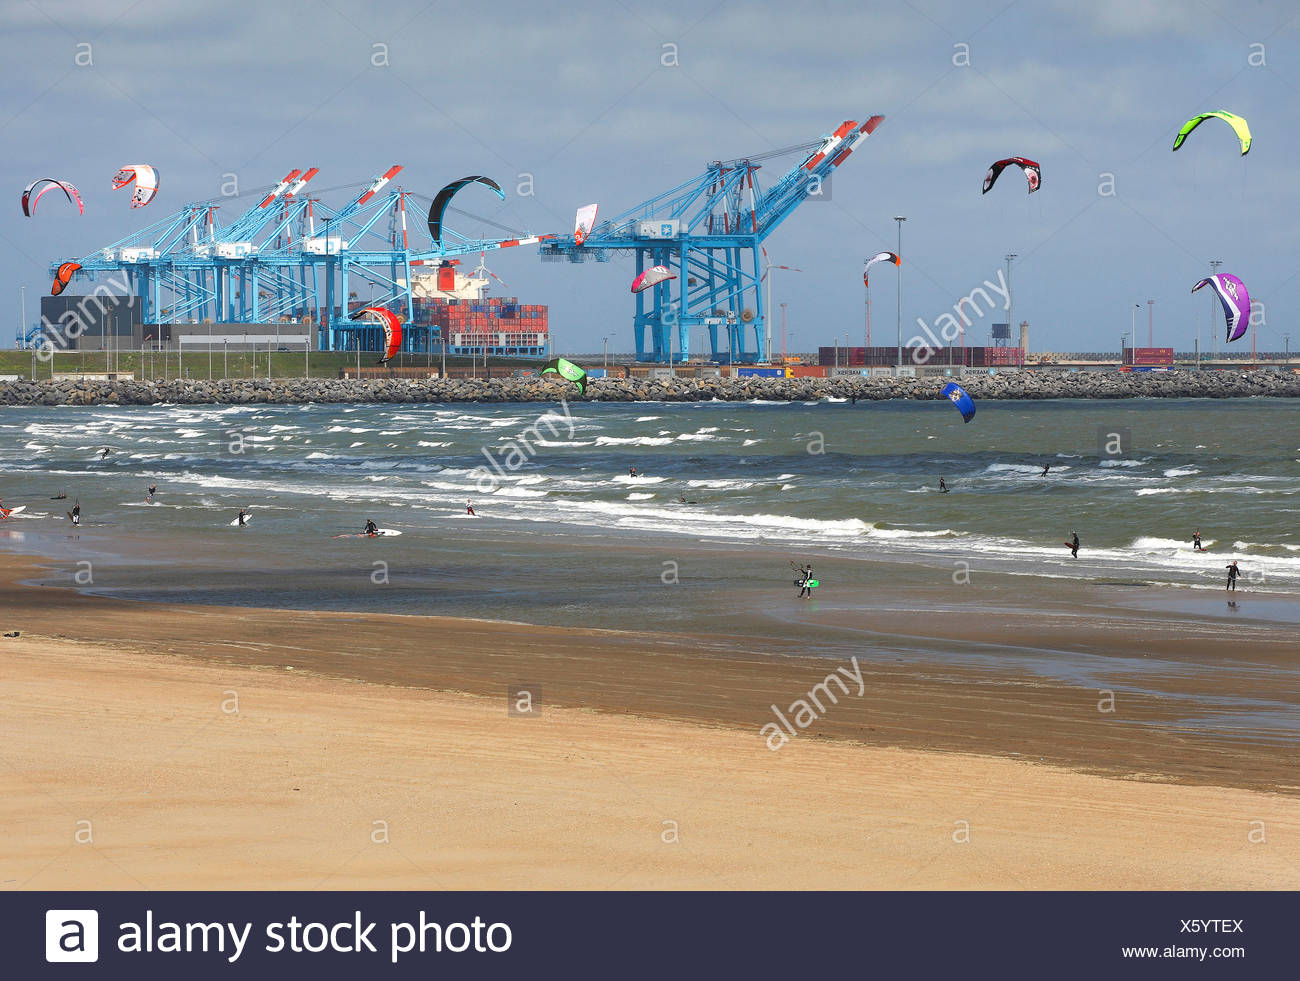 kitesurfers at the beach of Blankenberge with the harbour of Zeebrugge in the background, Belgium, West Flanders, Zeebrugge - Stock Image